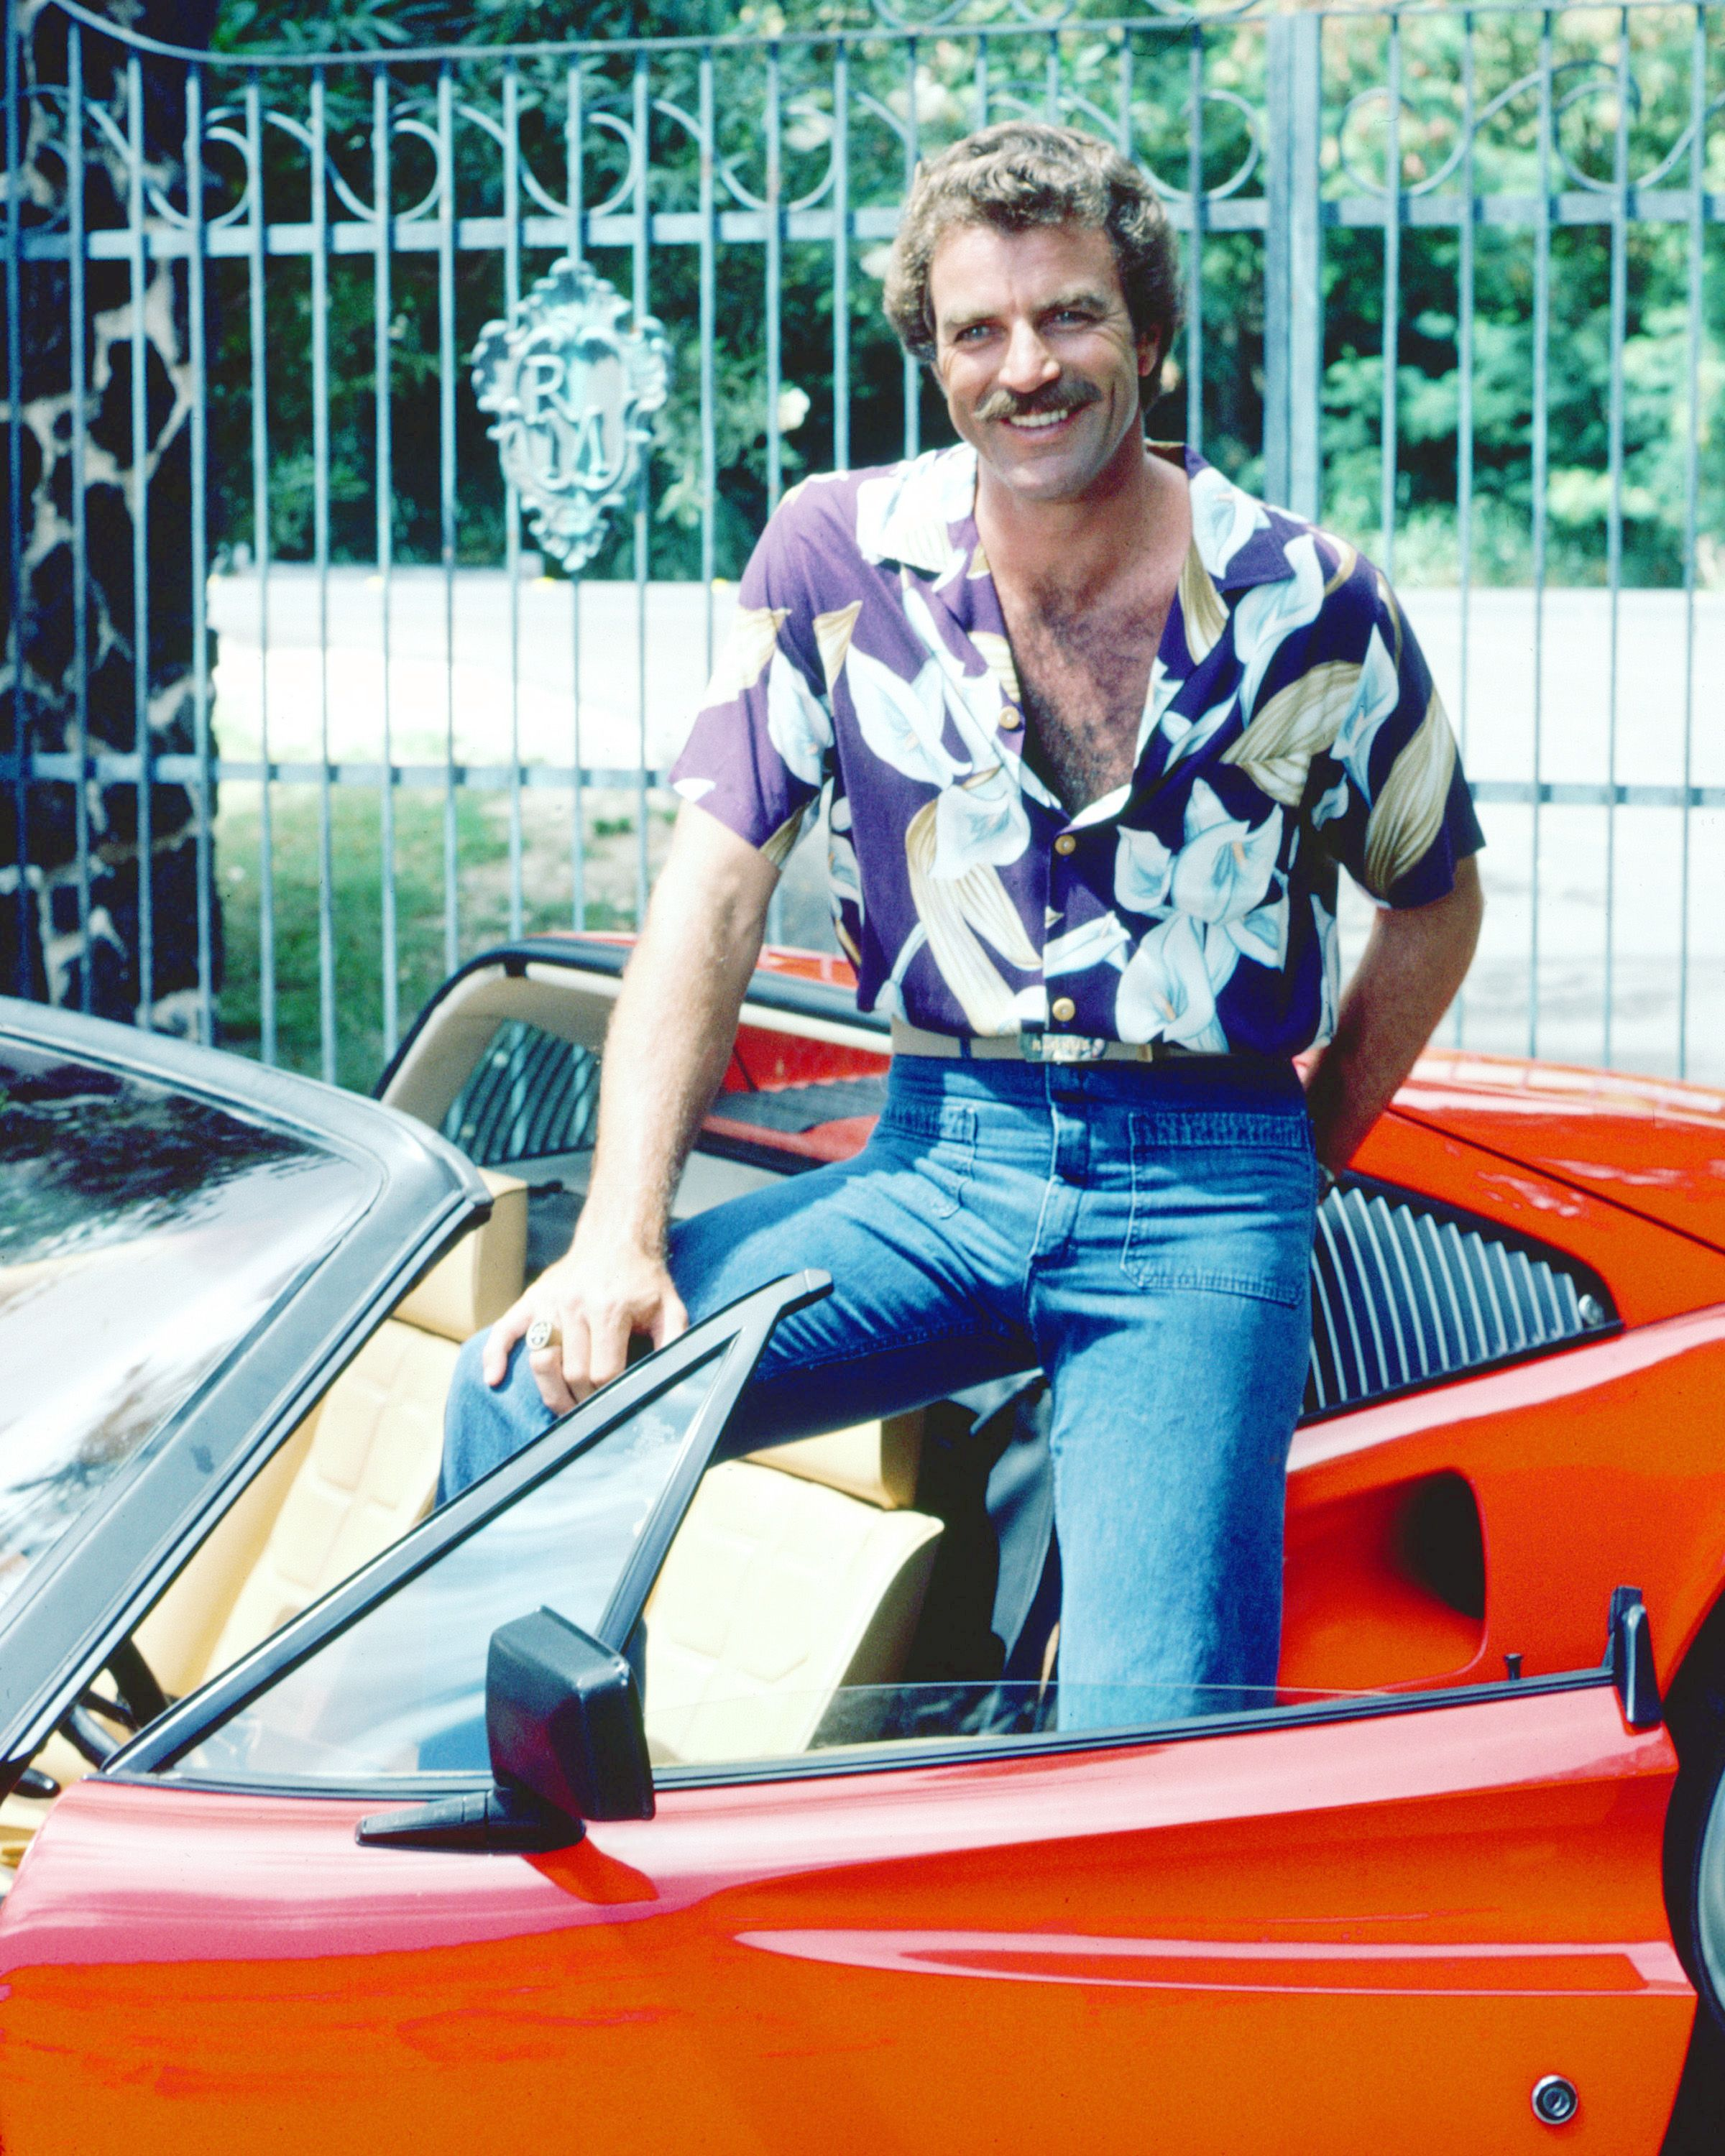 Magnum P.I. star explains why new version doesn't have a moustache